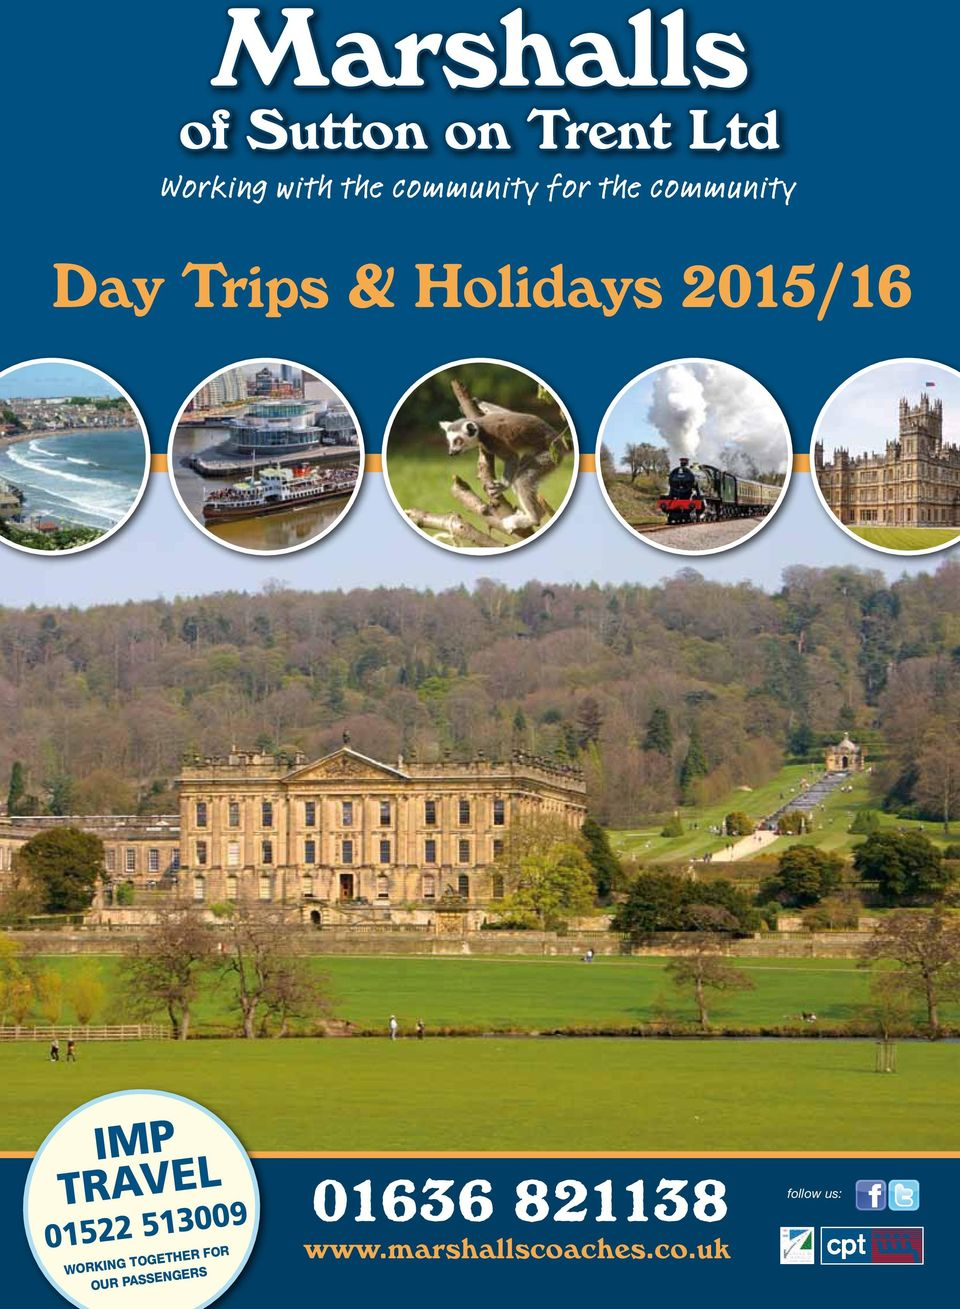 2015/16 IMP TRAVEL 01522 513009 Working together for